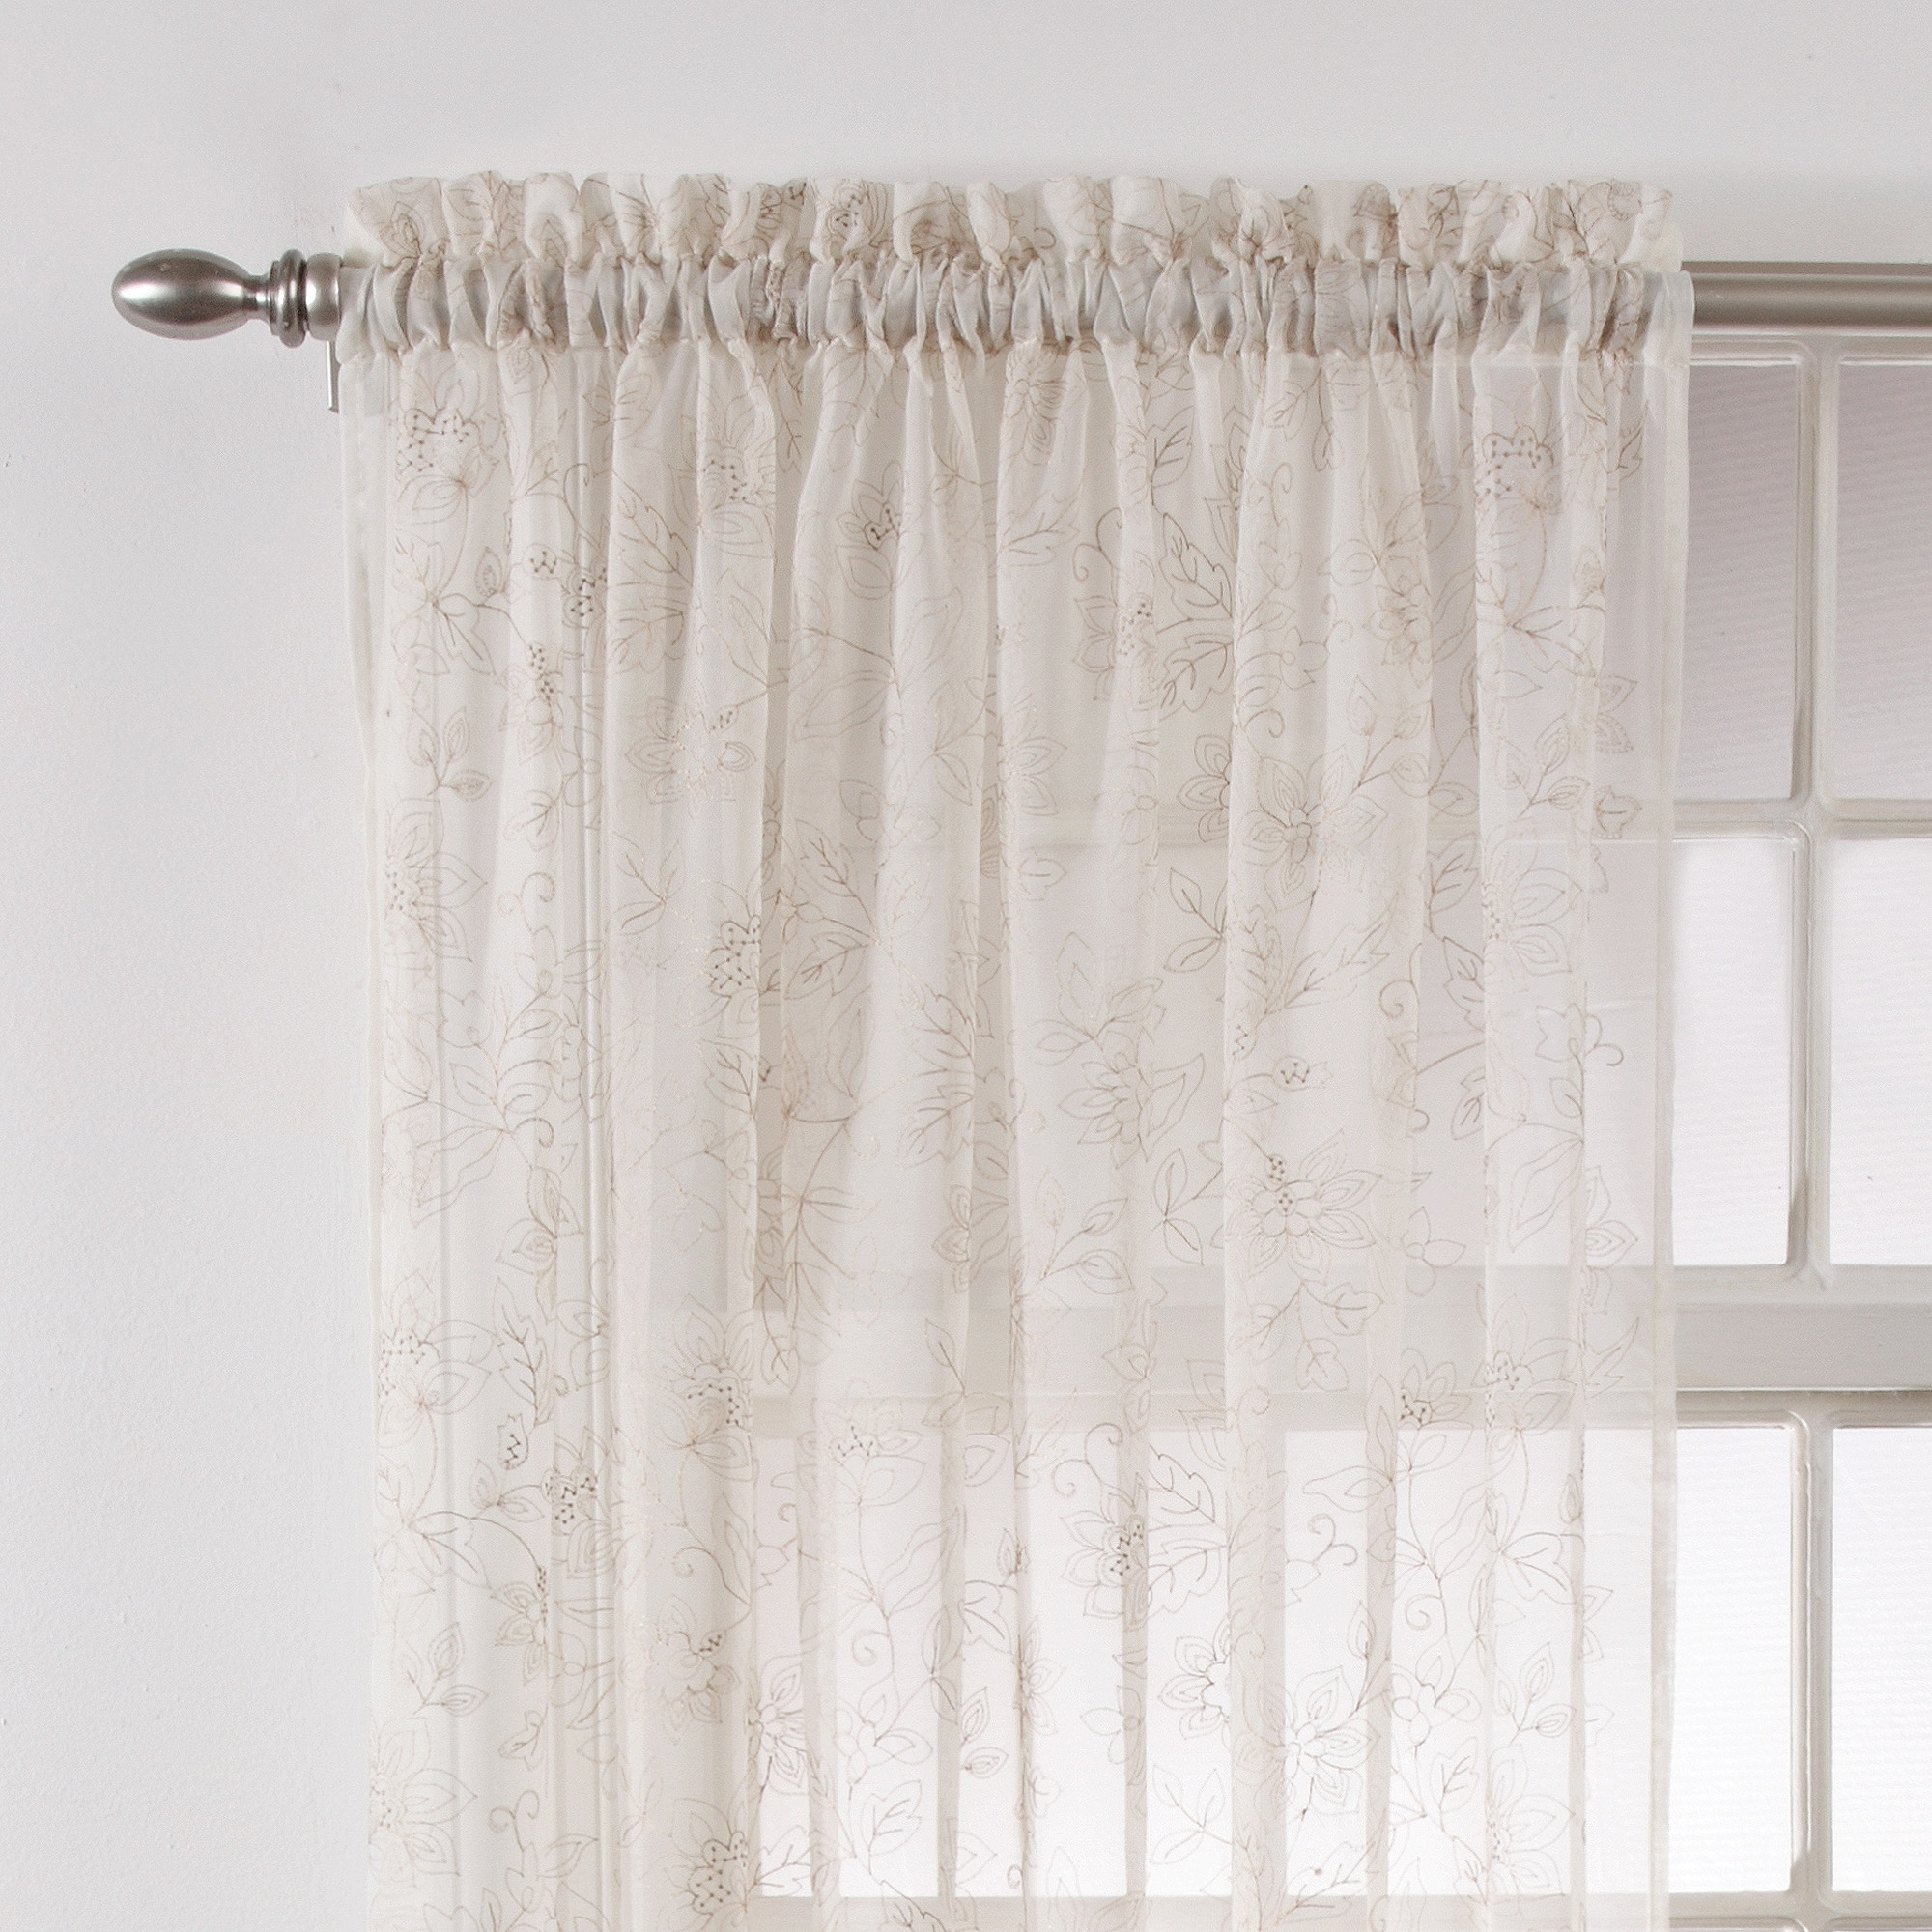 Better Homes And Gardens Embroidered Sheer Curtain Panel Walmart Inside Curtains Sheers (View 3 of 25)